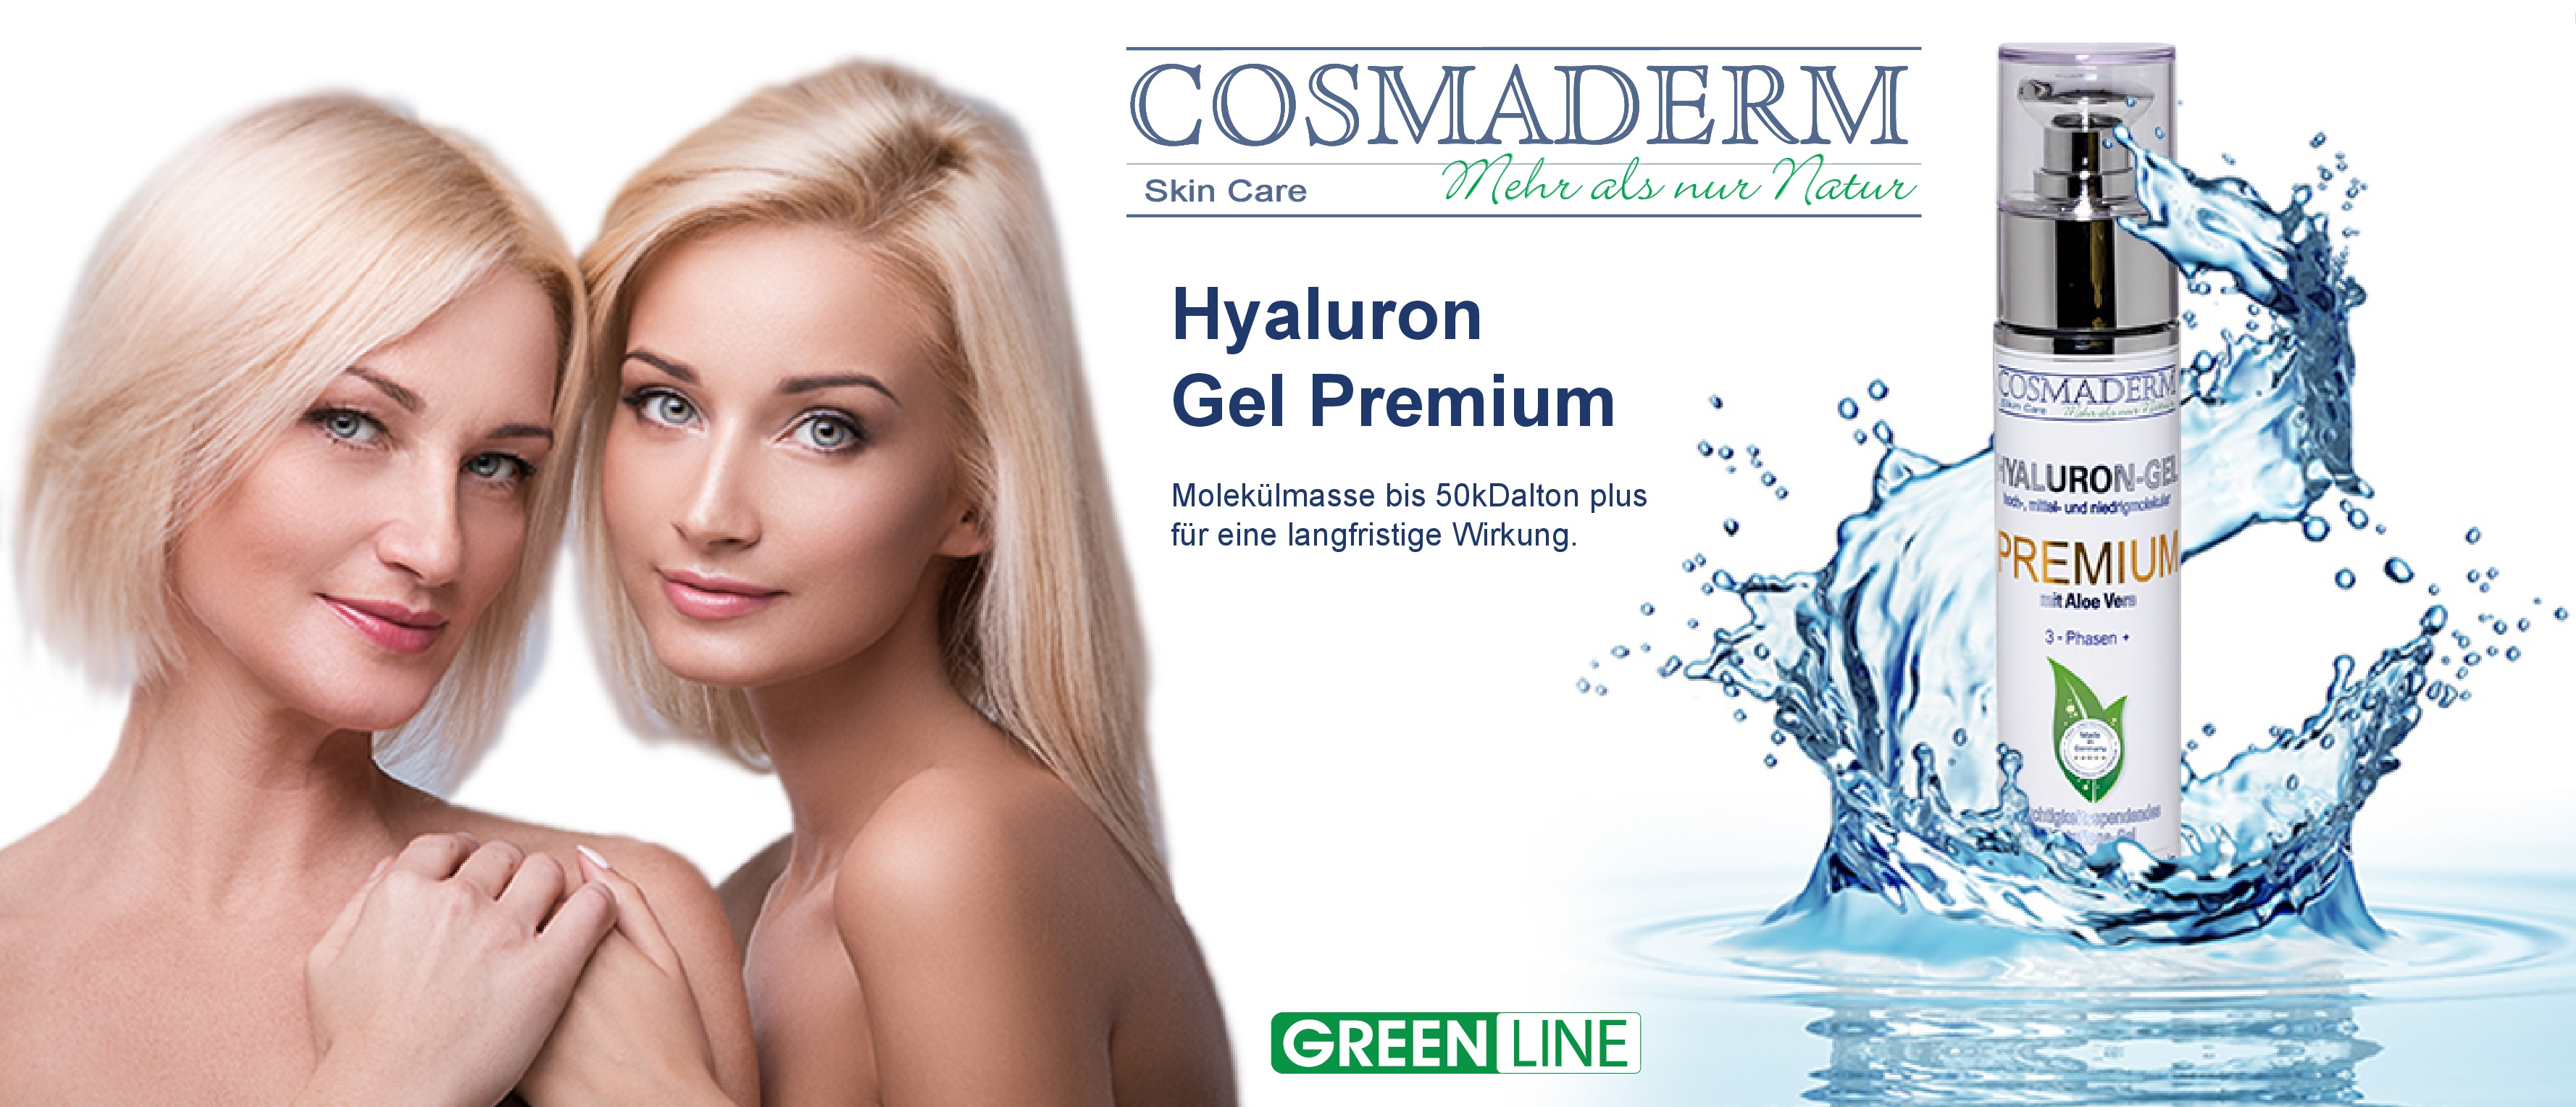 Cosmaderm - Skin Care